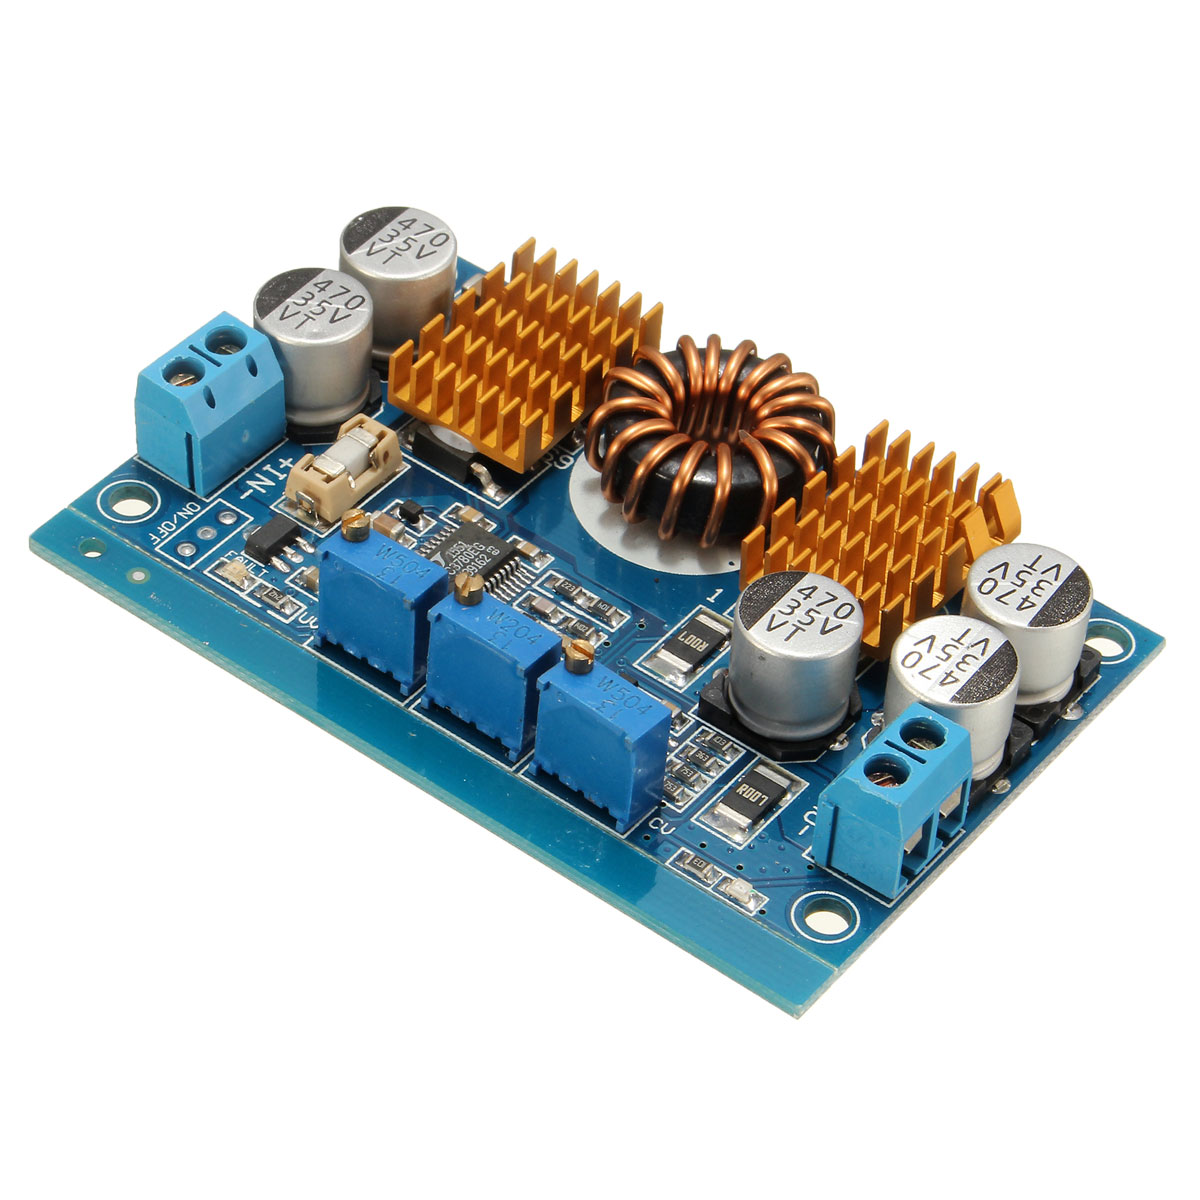 Buy Ltc3780 Automatic Lifting Pressure Constant Voltage Circuit Step Up Down Board Module Integrated Circuits From Reliable